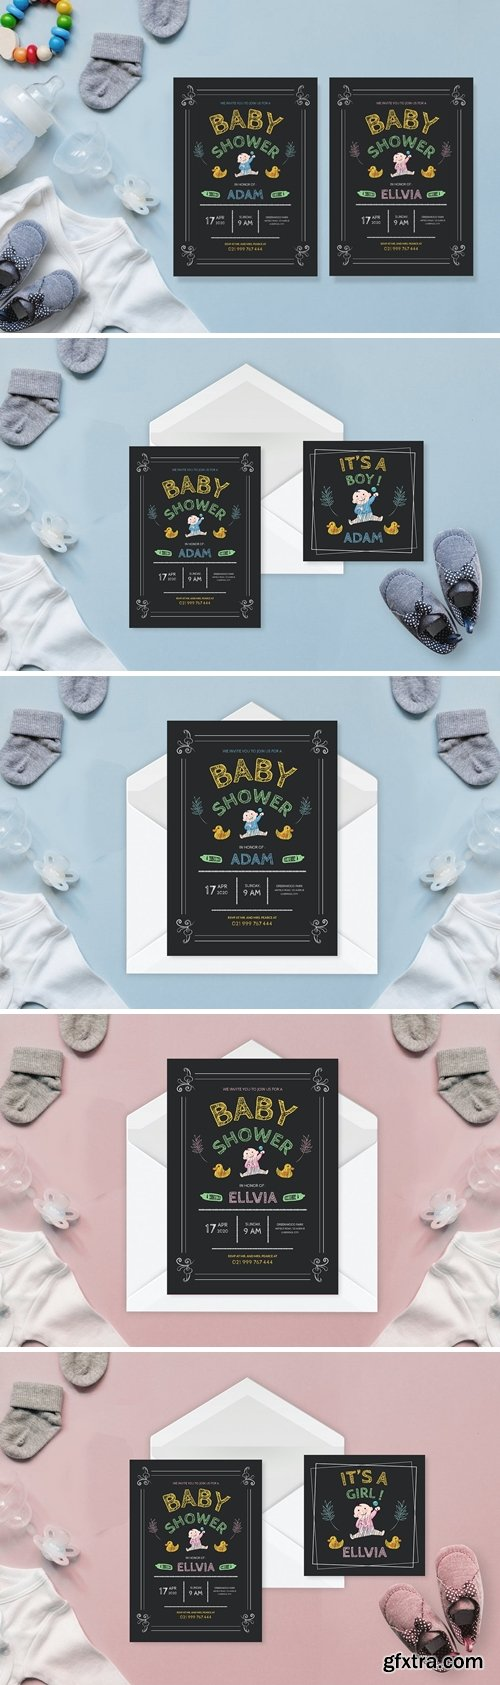 Simple Chalkboard Drawing - Baby Shower Invitation